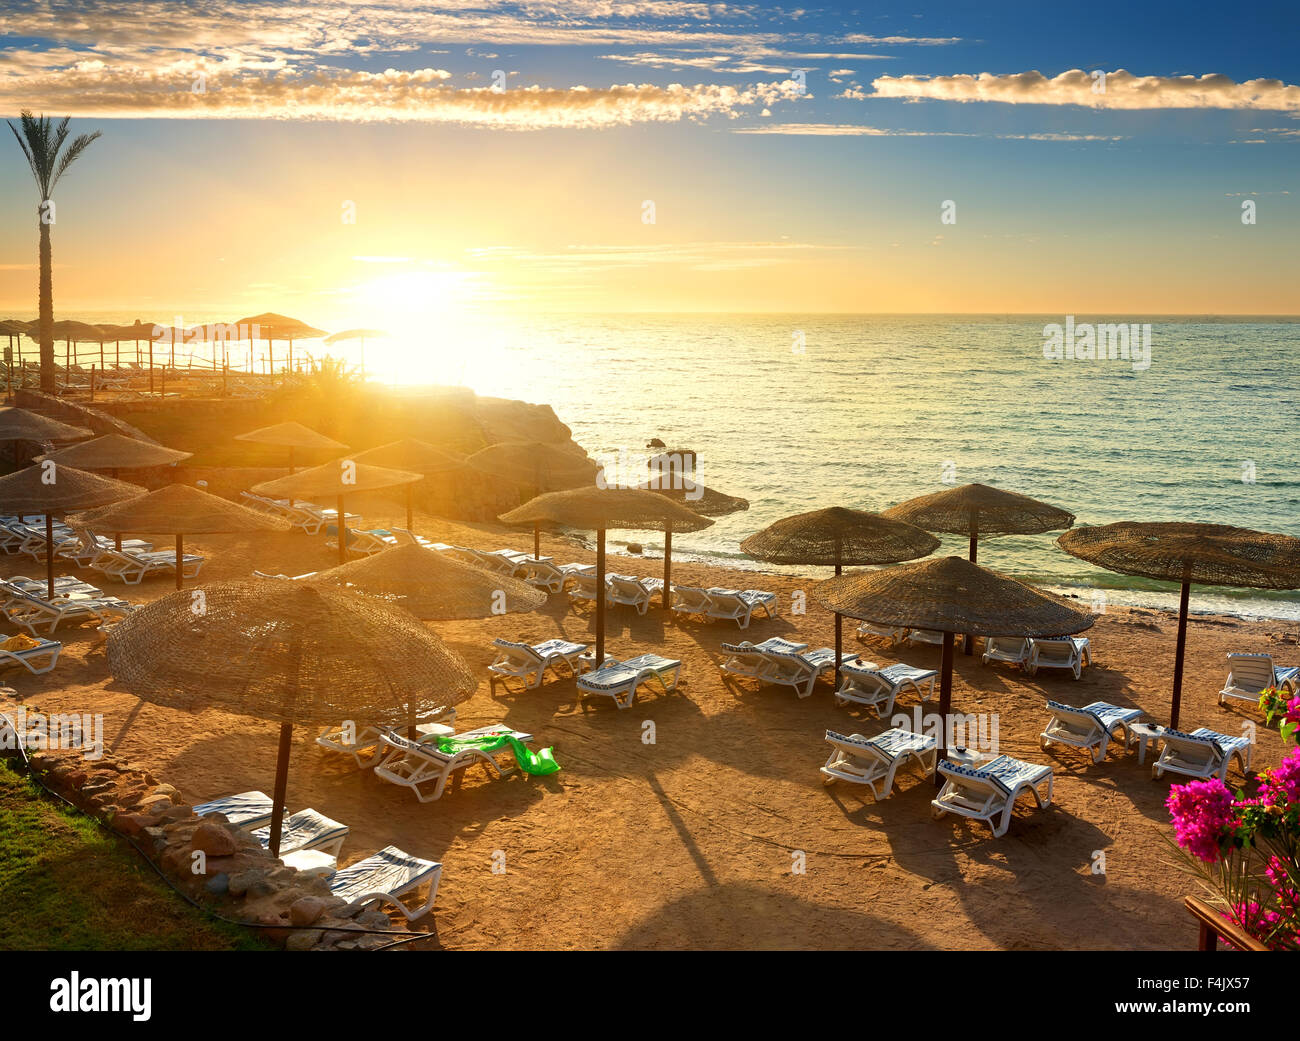 Red sea beach with parasols at sunset - Stock Image